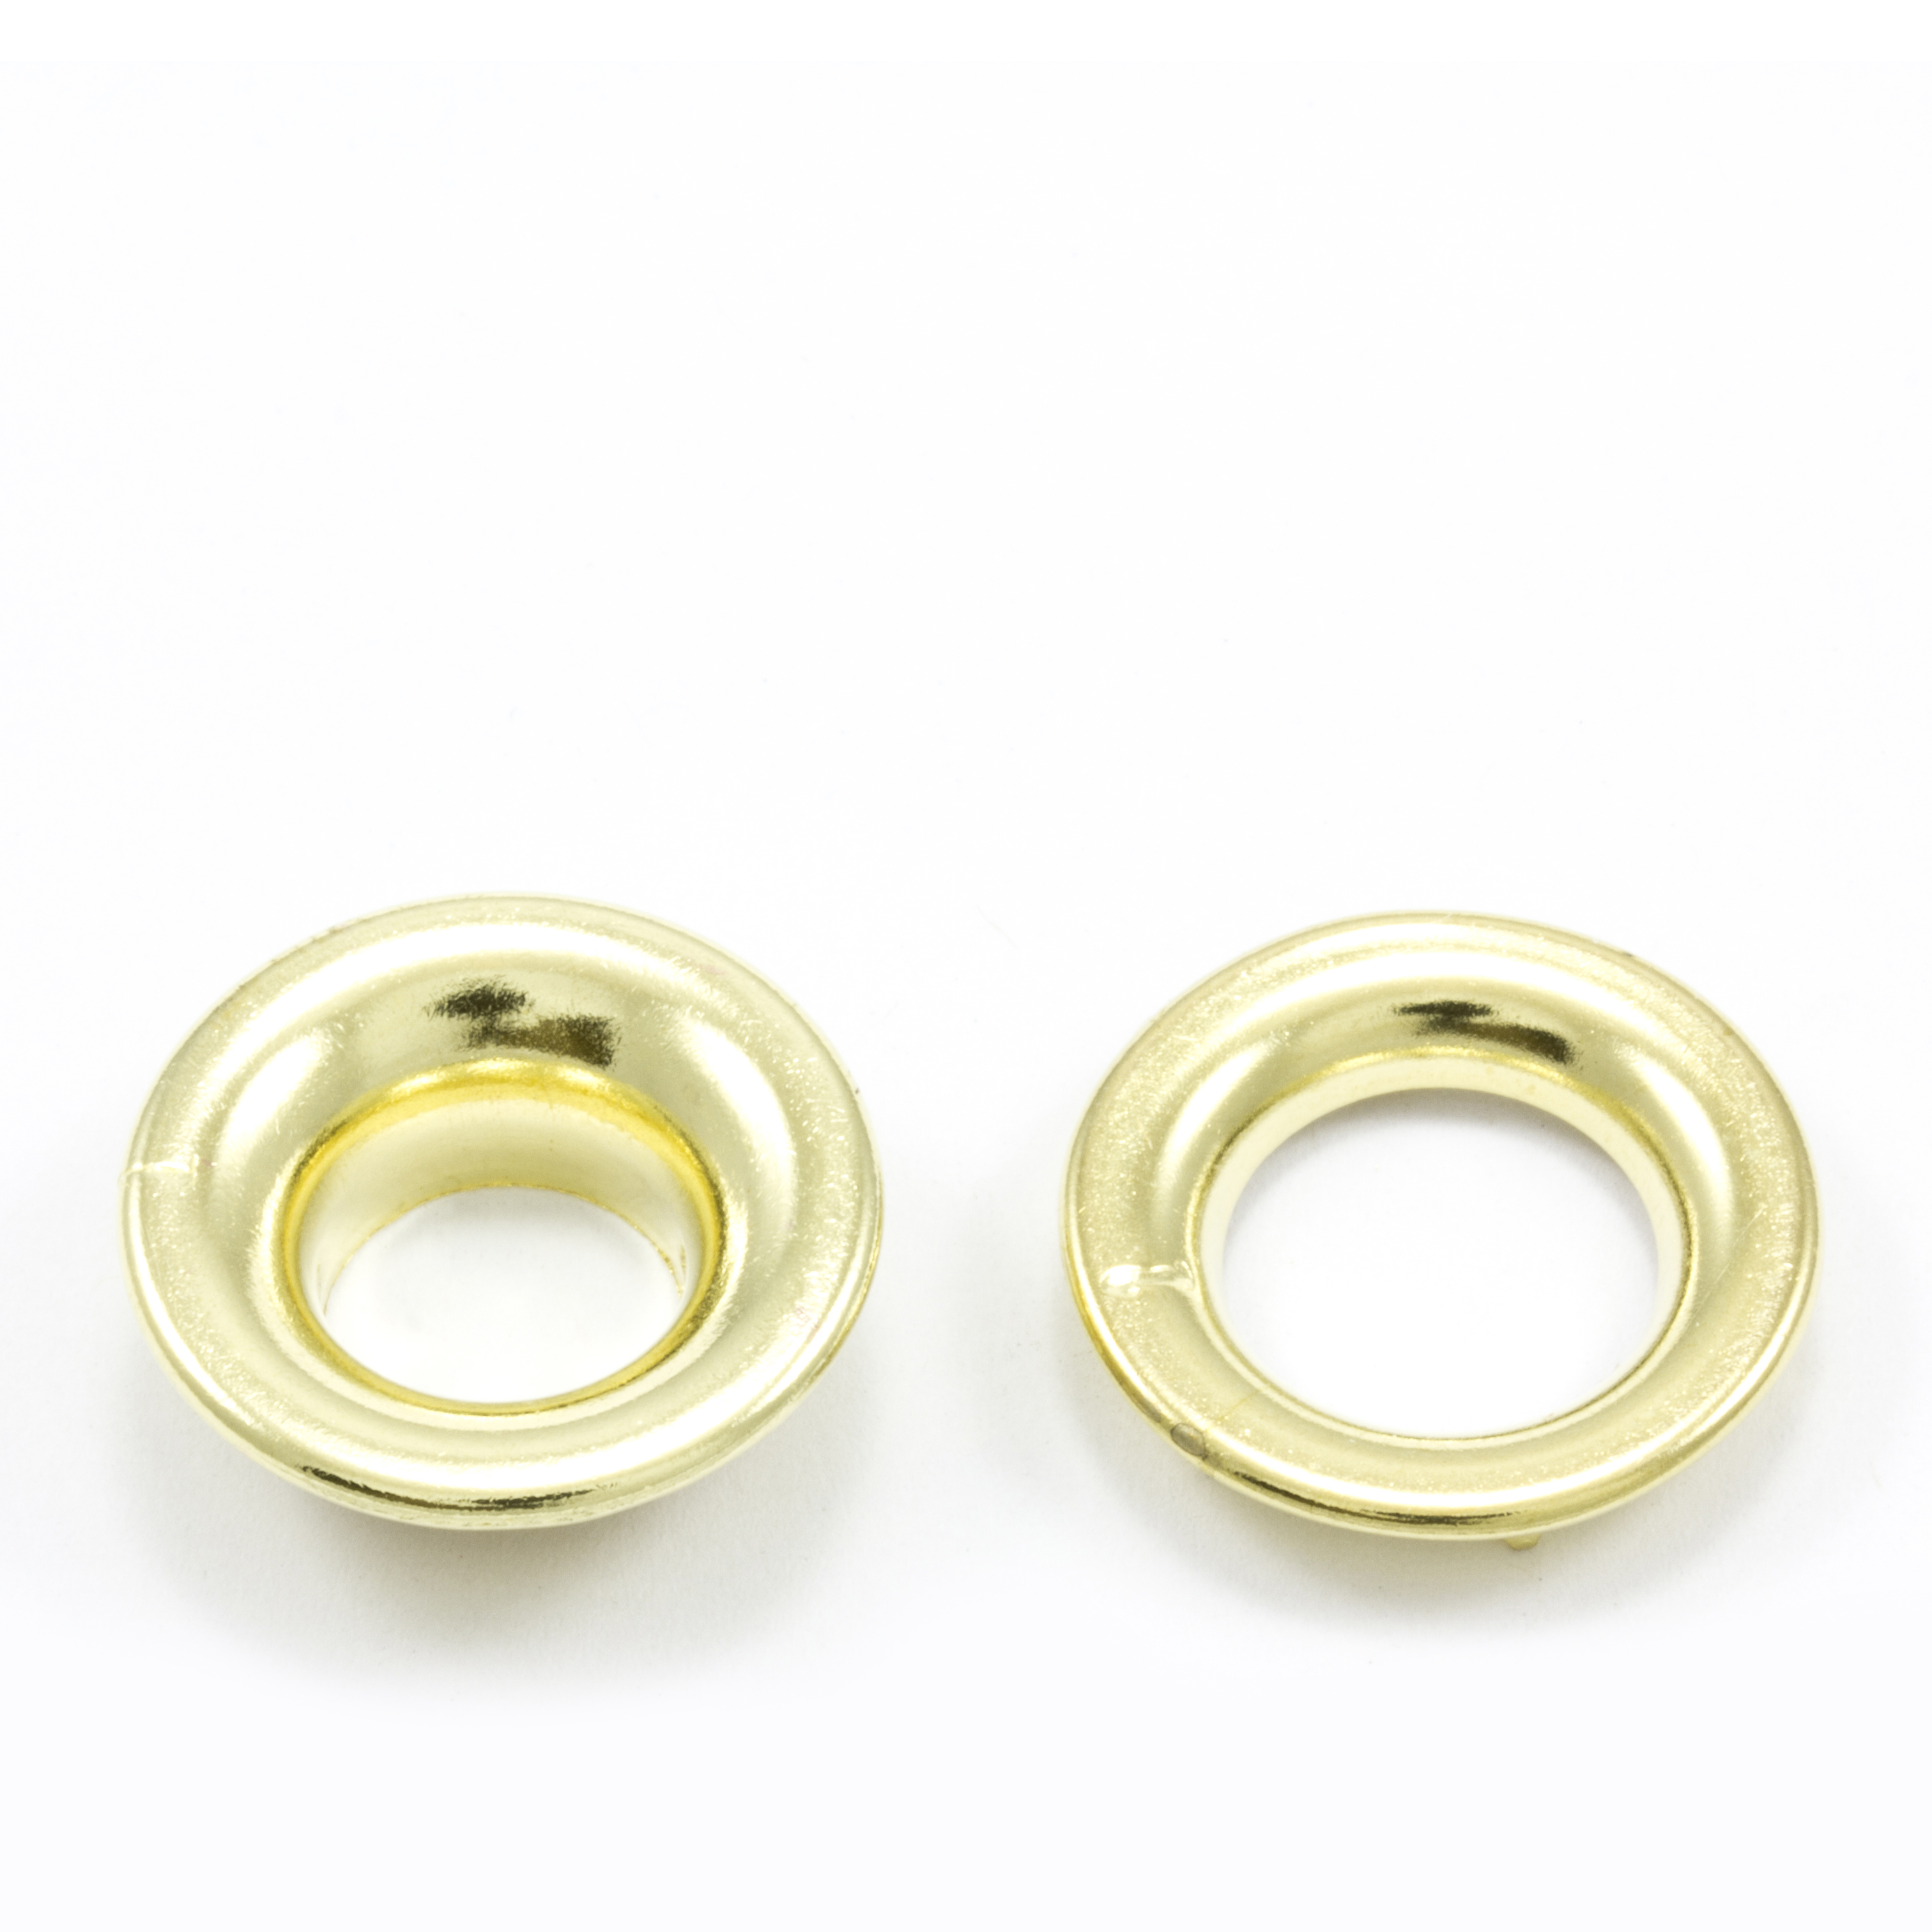 Thumbnail Rolled Rim Grommet with Spur Washer #1 Brass 13/32 1